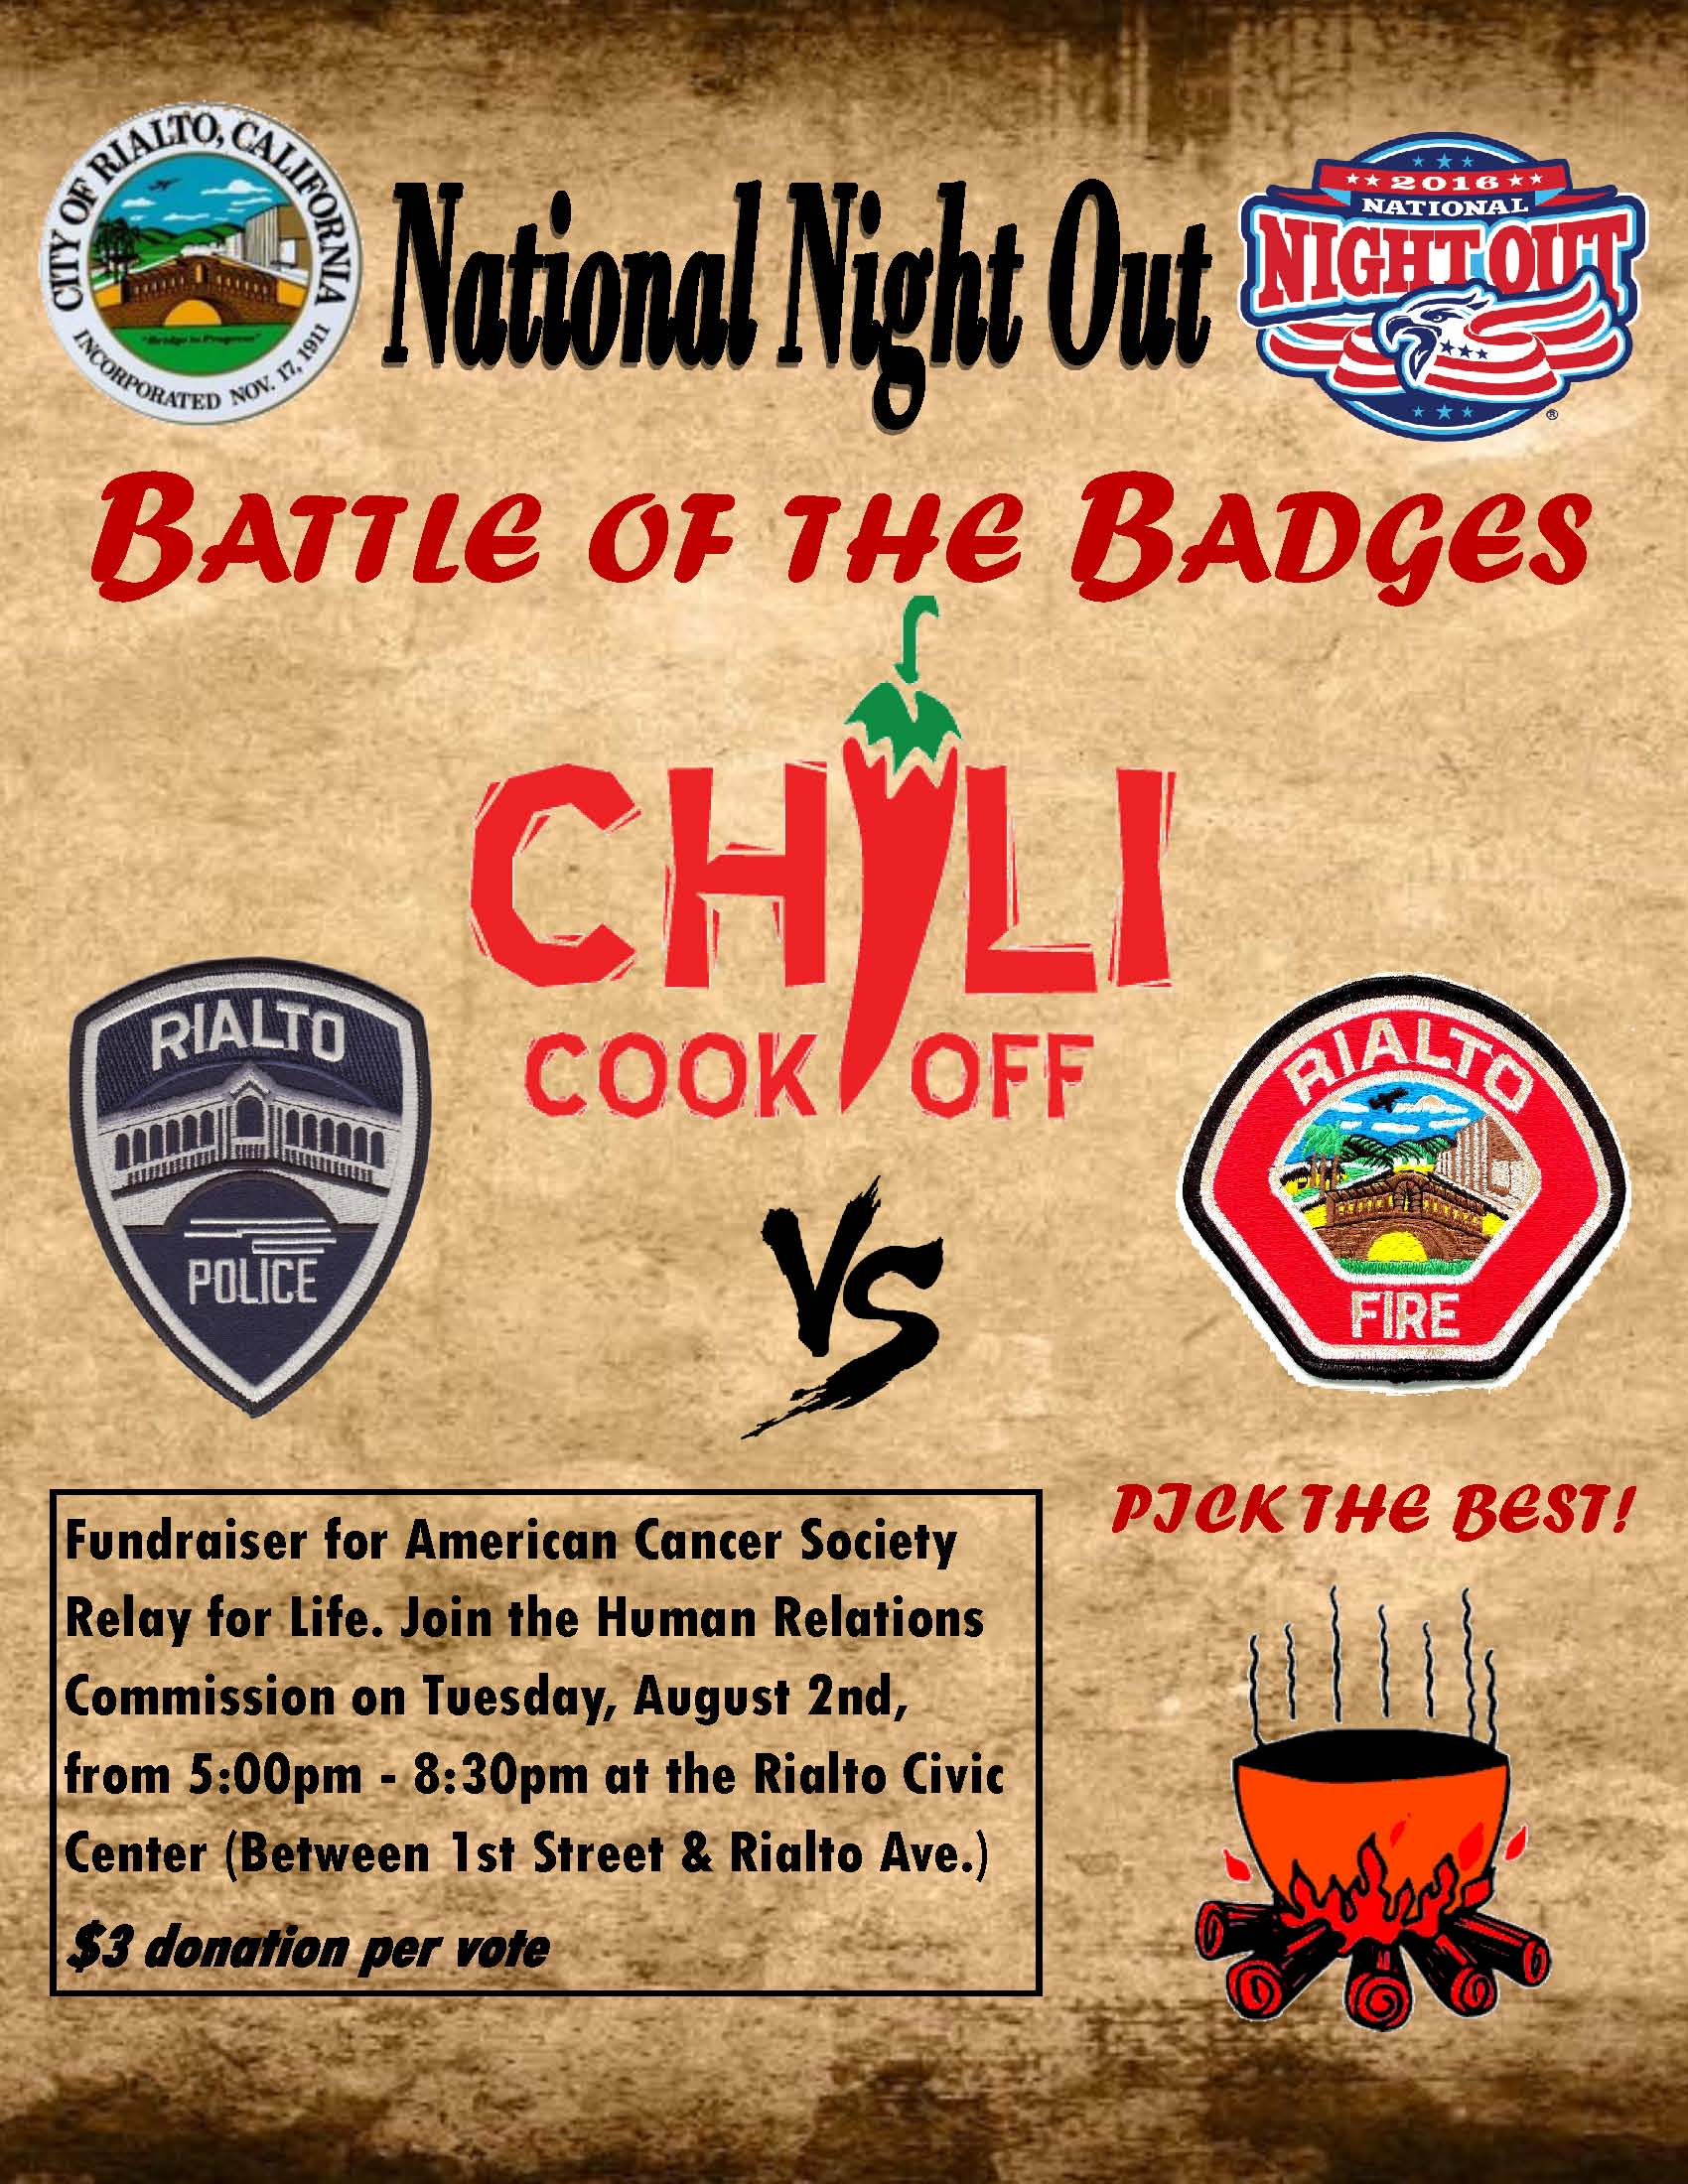 Chili_Cook_Off_Flyer_2016_(1).jpg